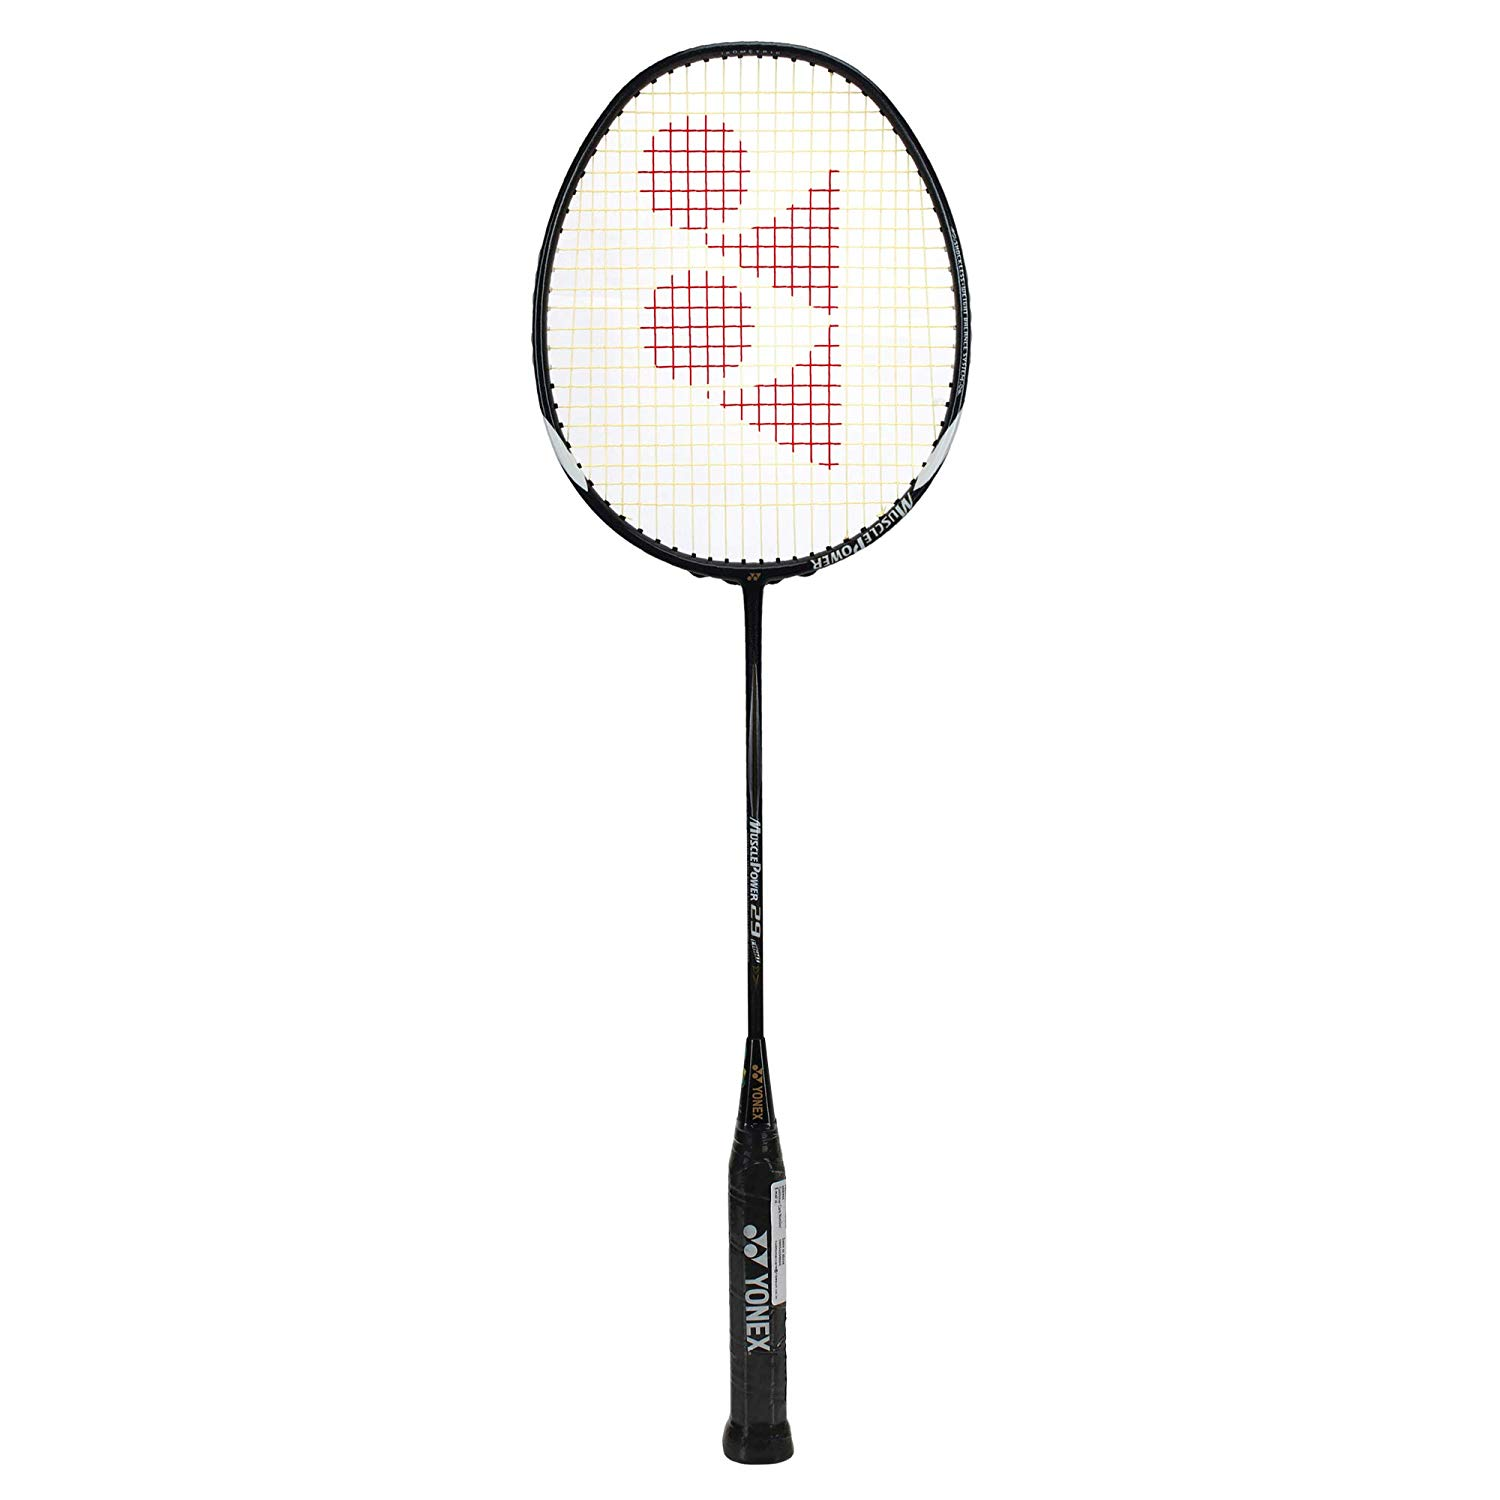 Best Badminton Racket In India 2019 – Review & Buying Guide